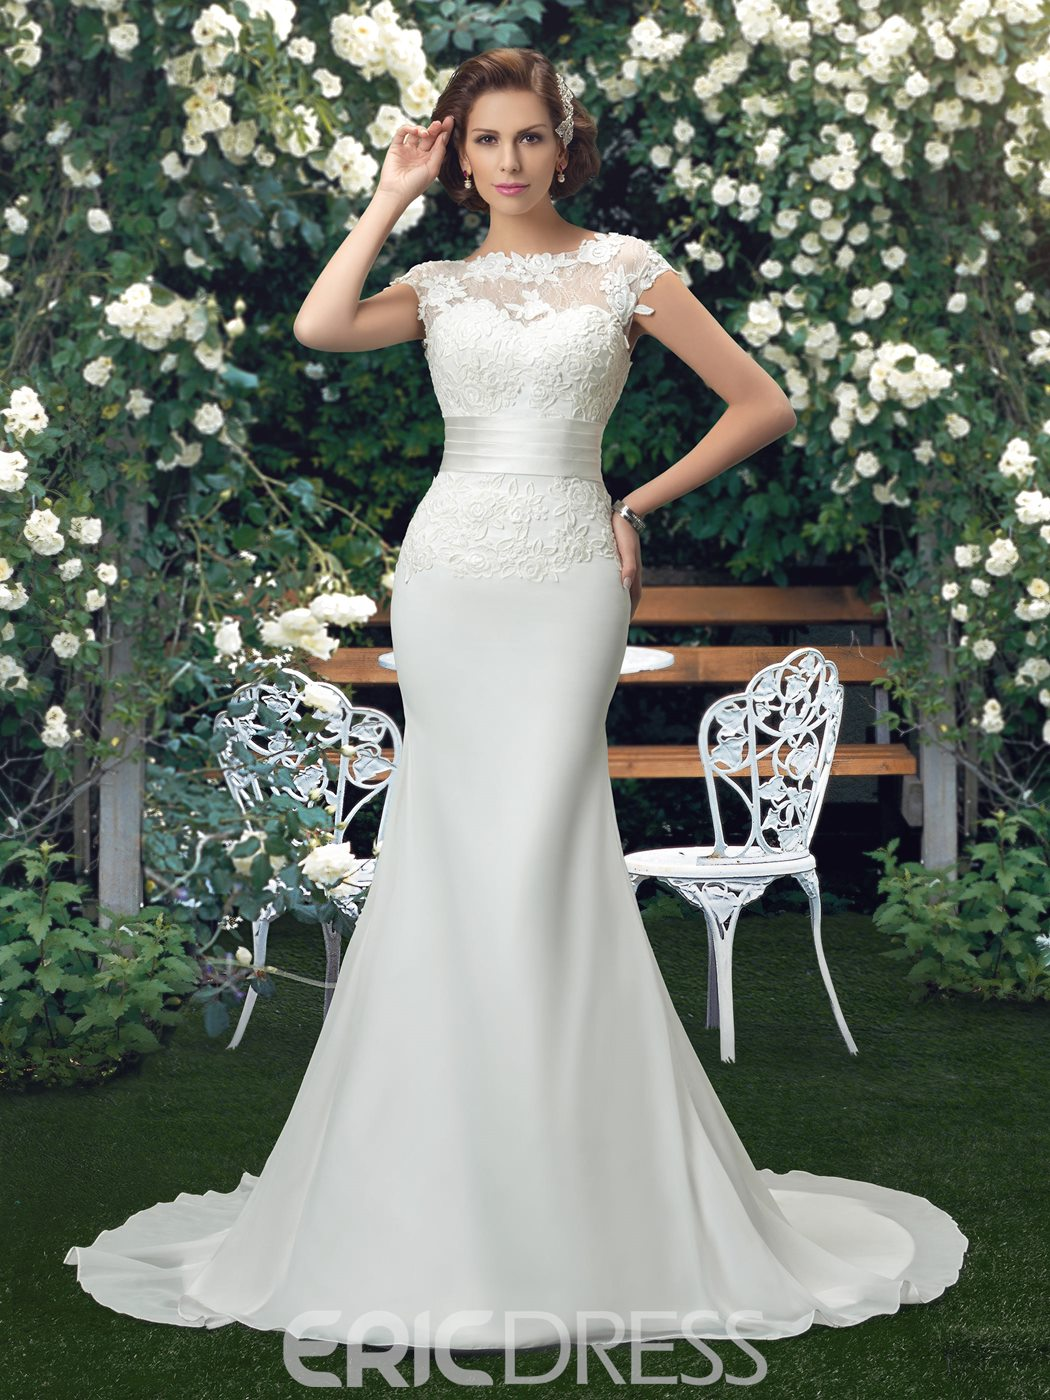 Cheap Plus Size Wedding Dresses Online - Ericdress.com